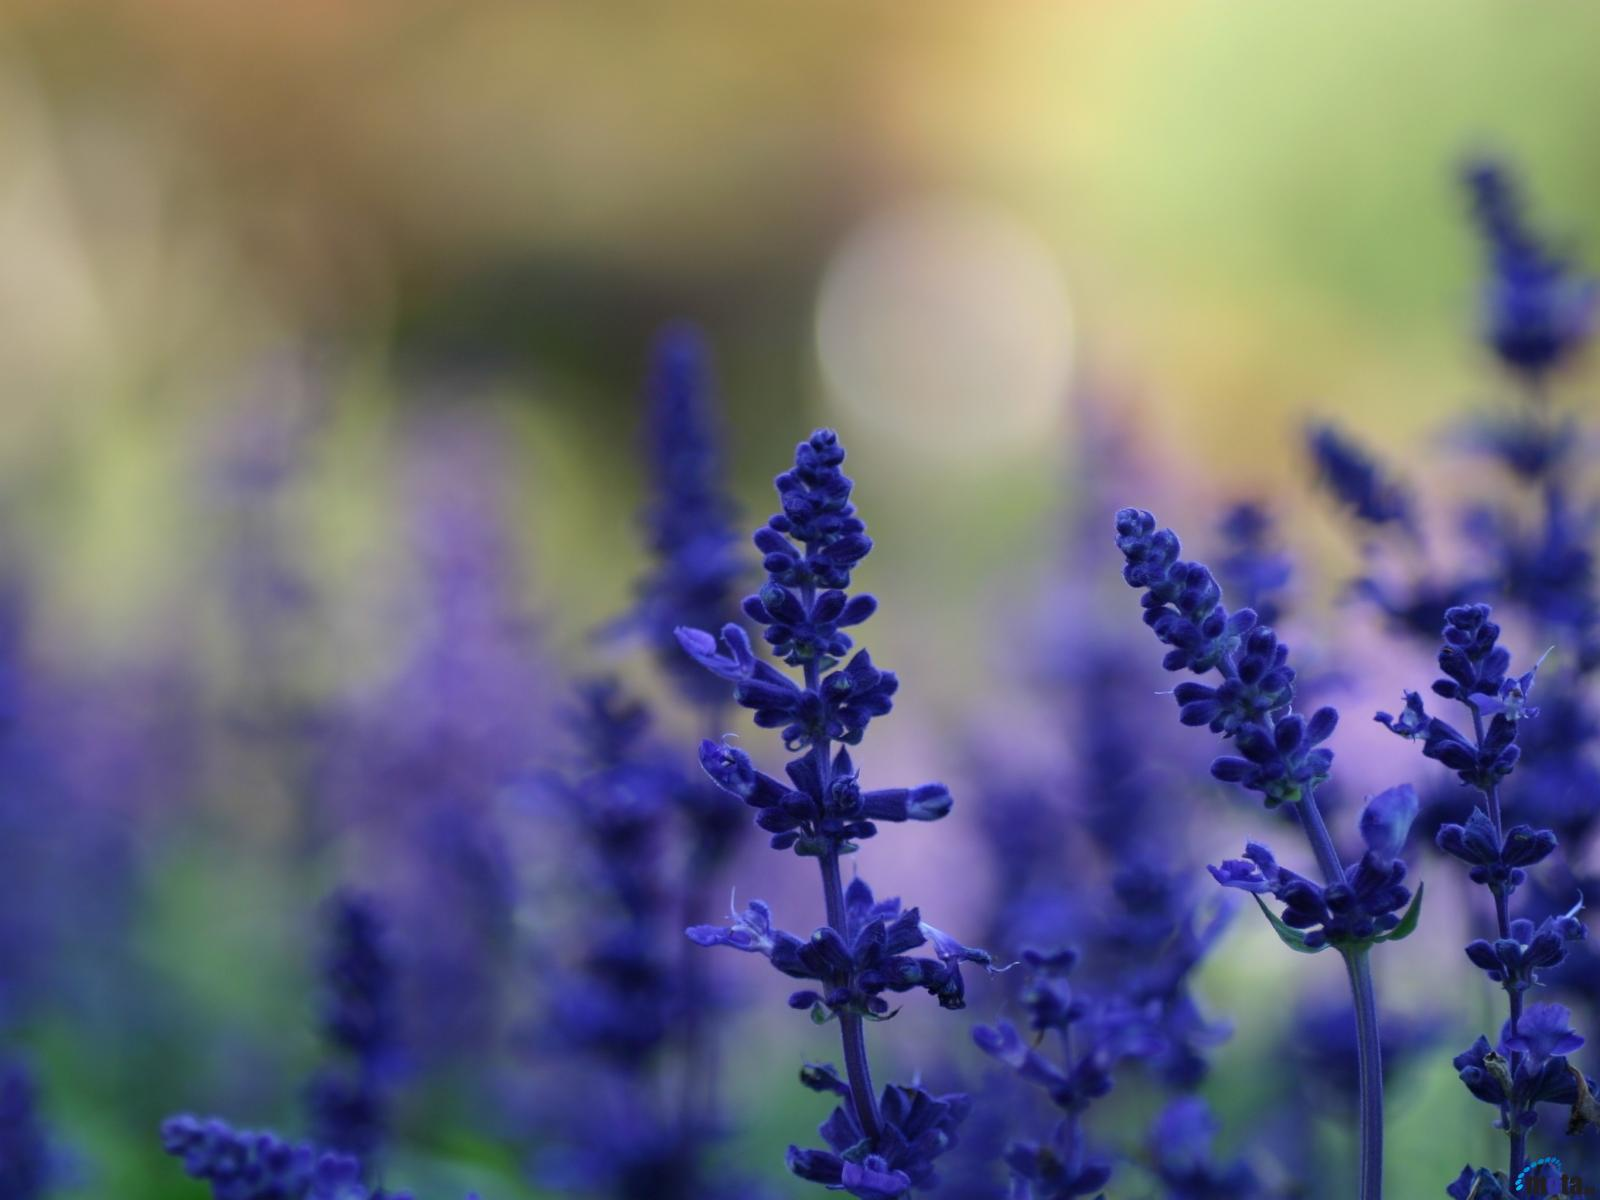 Download Wallpaper Lavender flowers 1600 x 1200 Desktop wallpapers 1600x1200